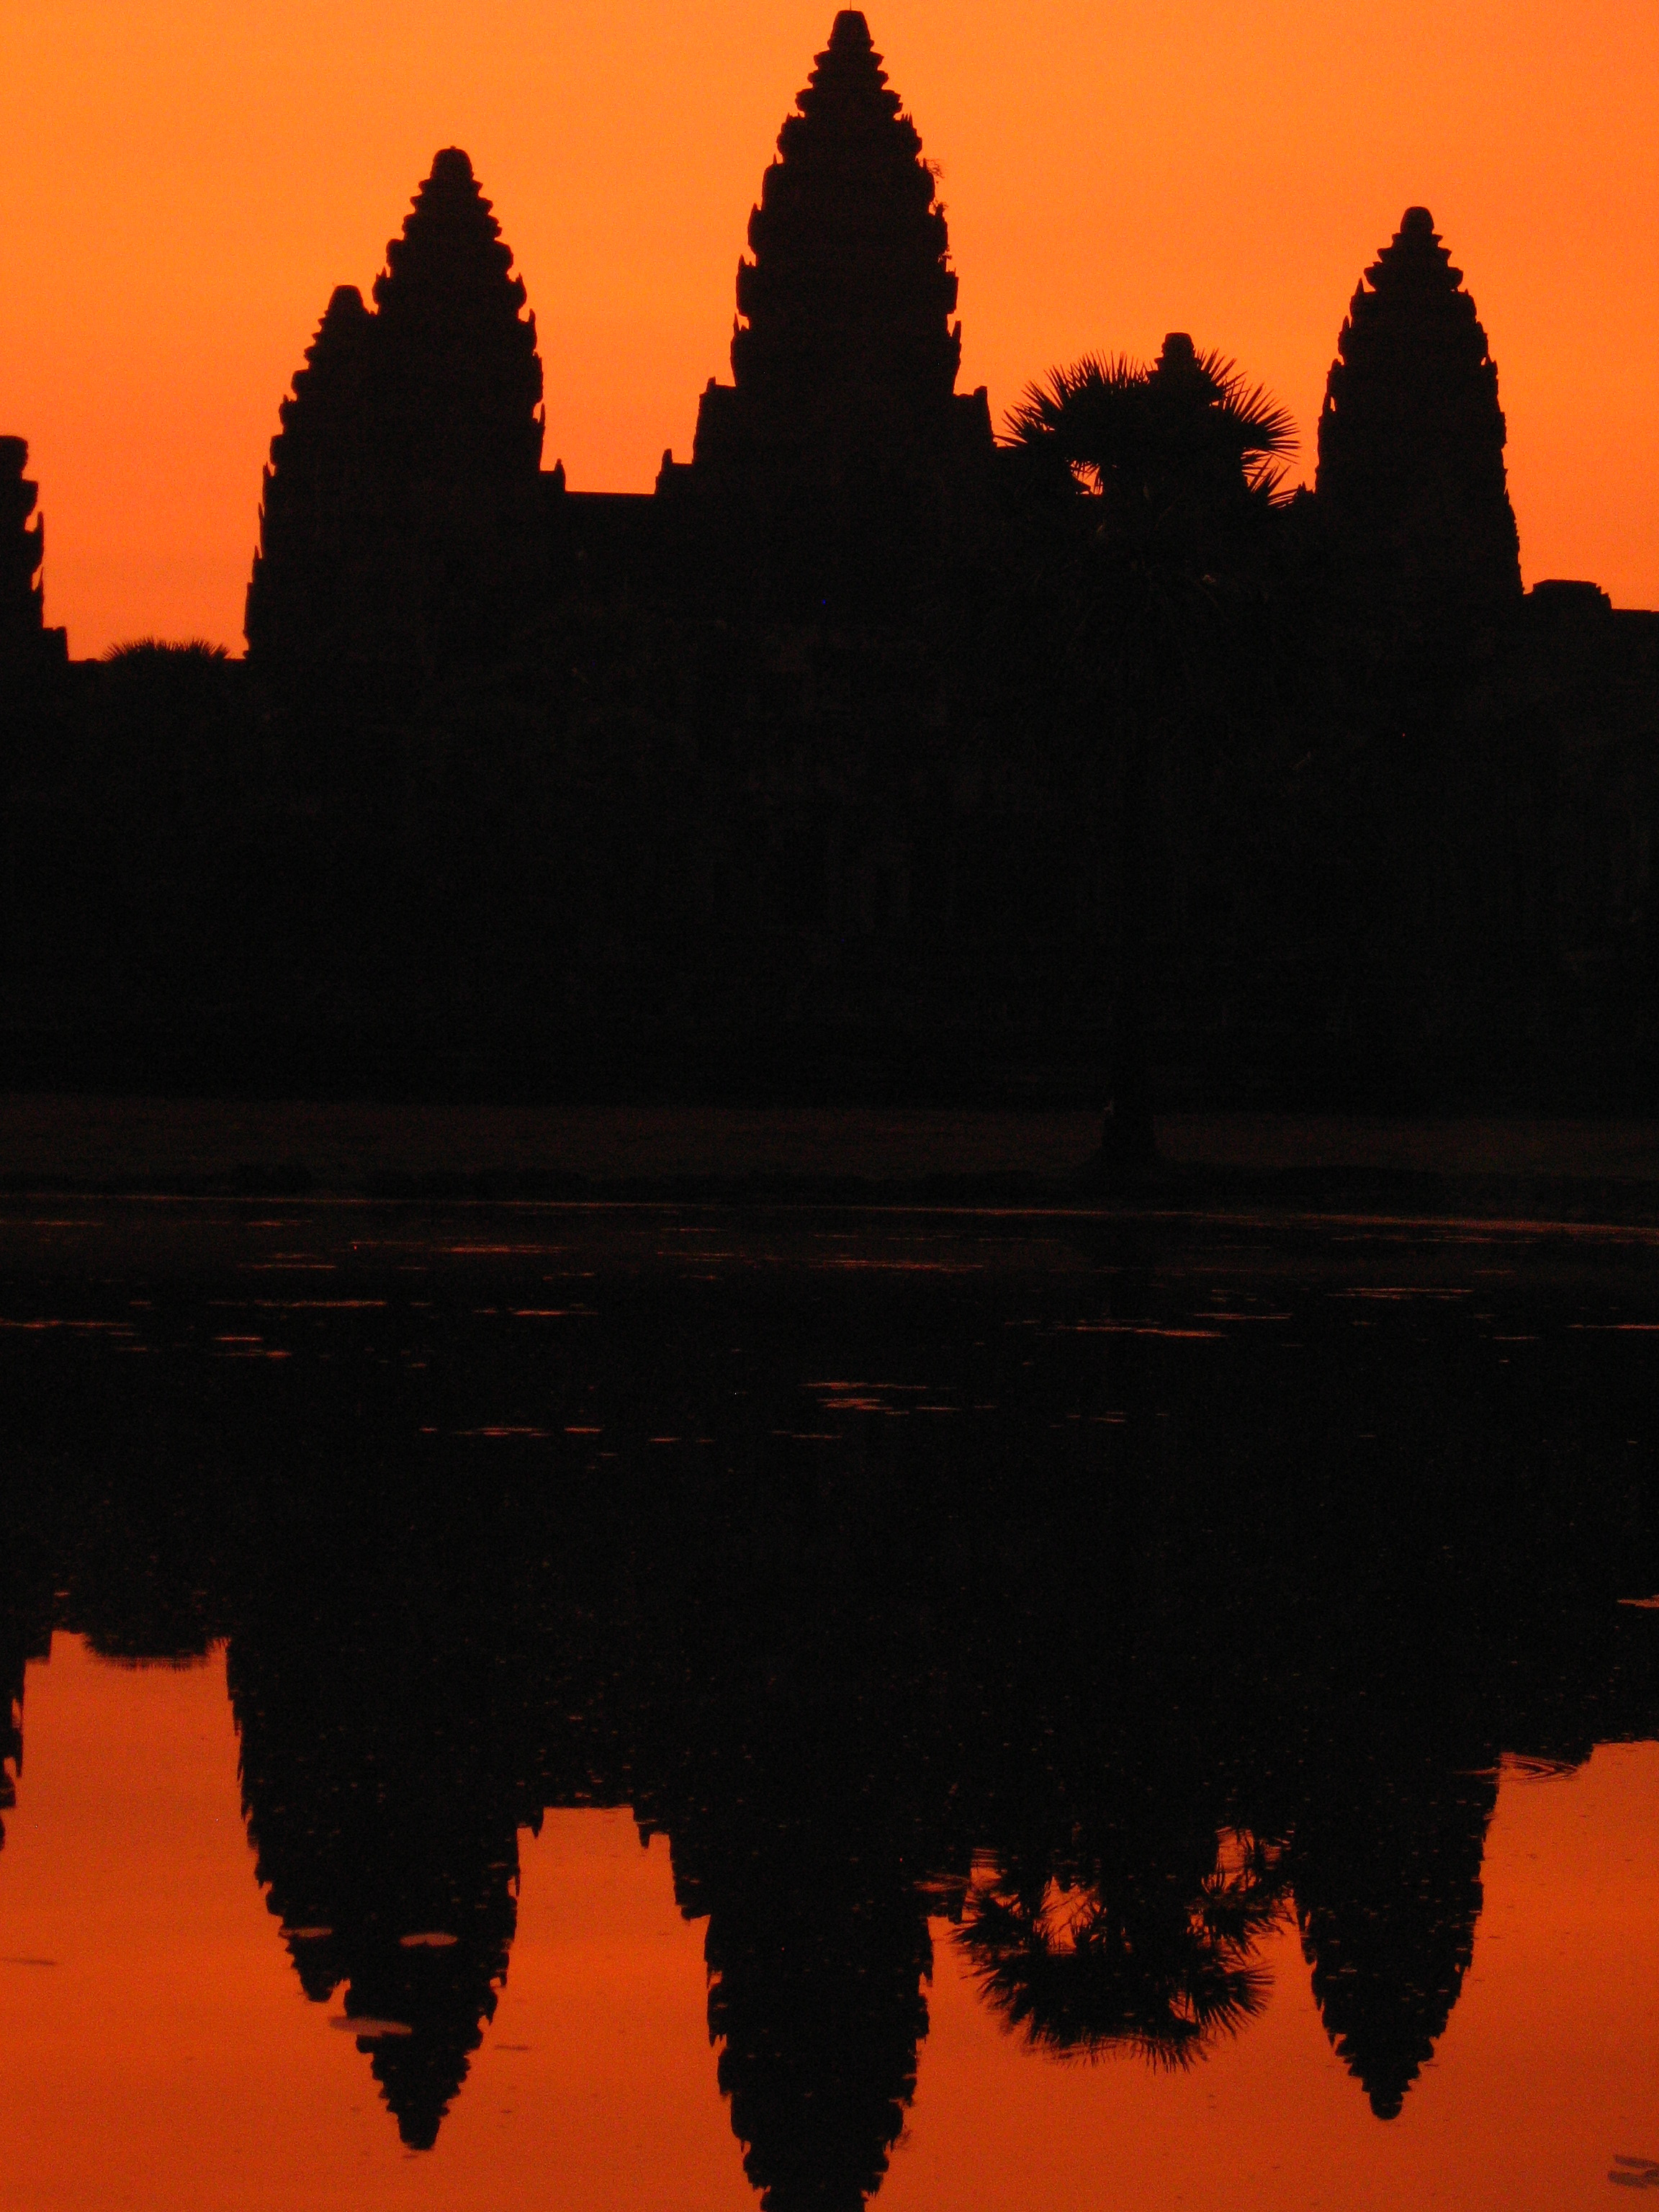 Angkor Wat was built for king Suryavarman II in the early 12th century as his state temple and capital city. Here is a shot at sunrise of Angkor Temple, the largest and best preserved monument of the Angkor complex in Cambodia.